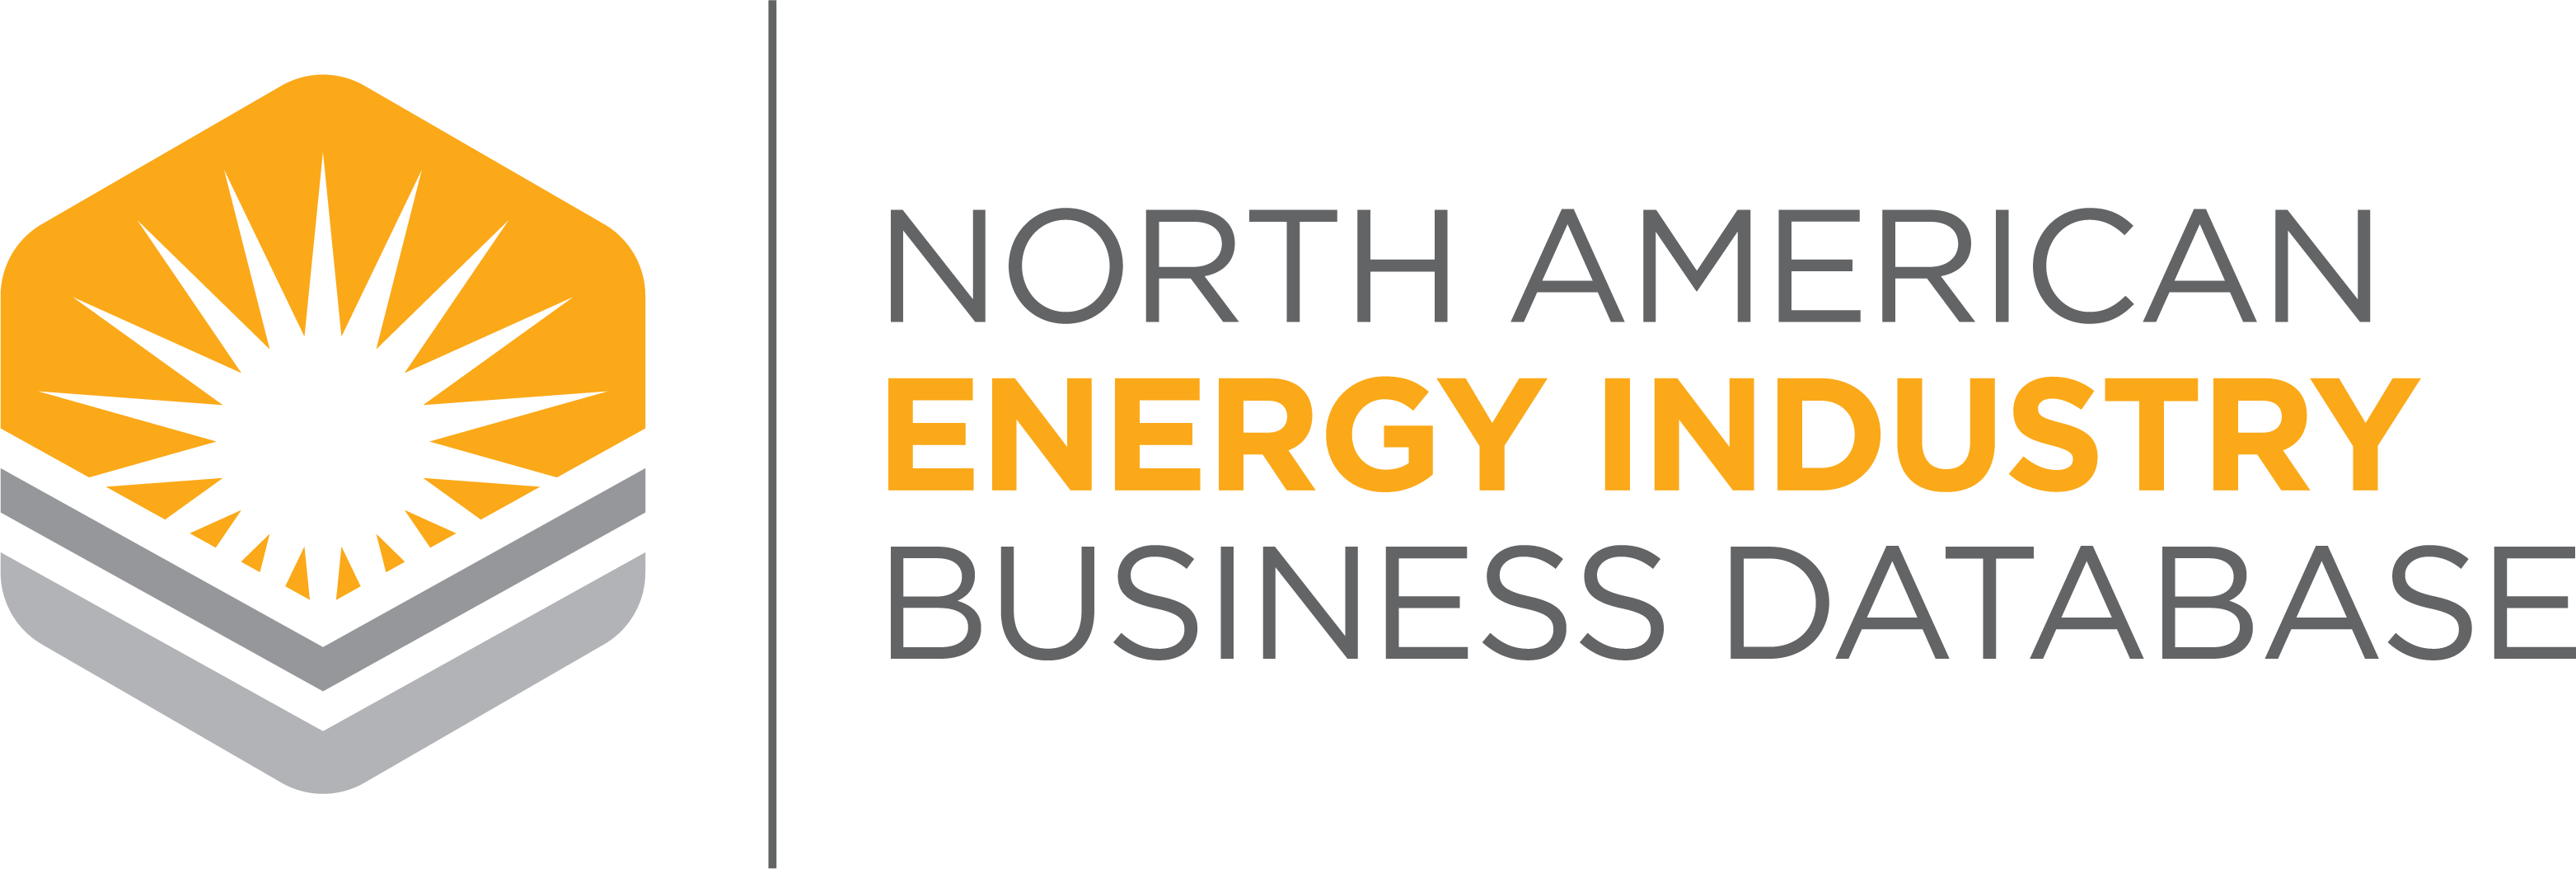 North American Energy Industry Business Database